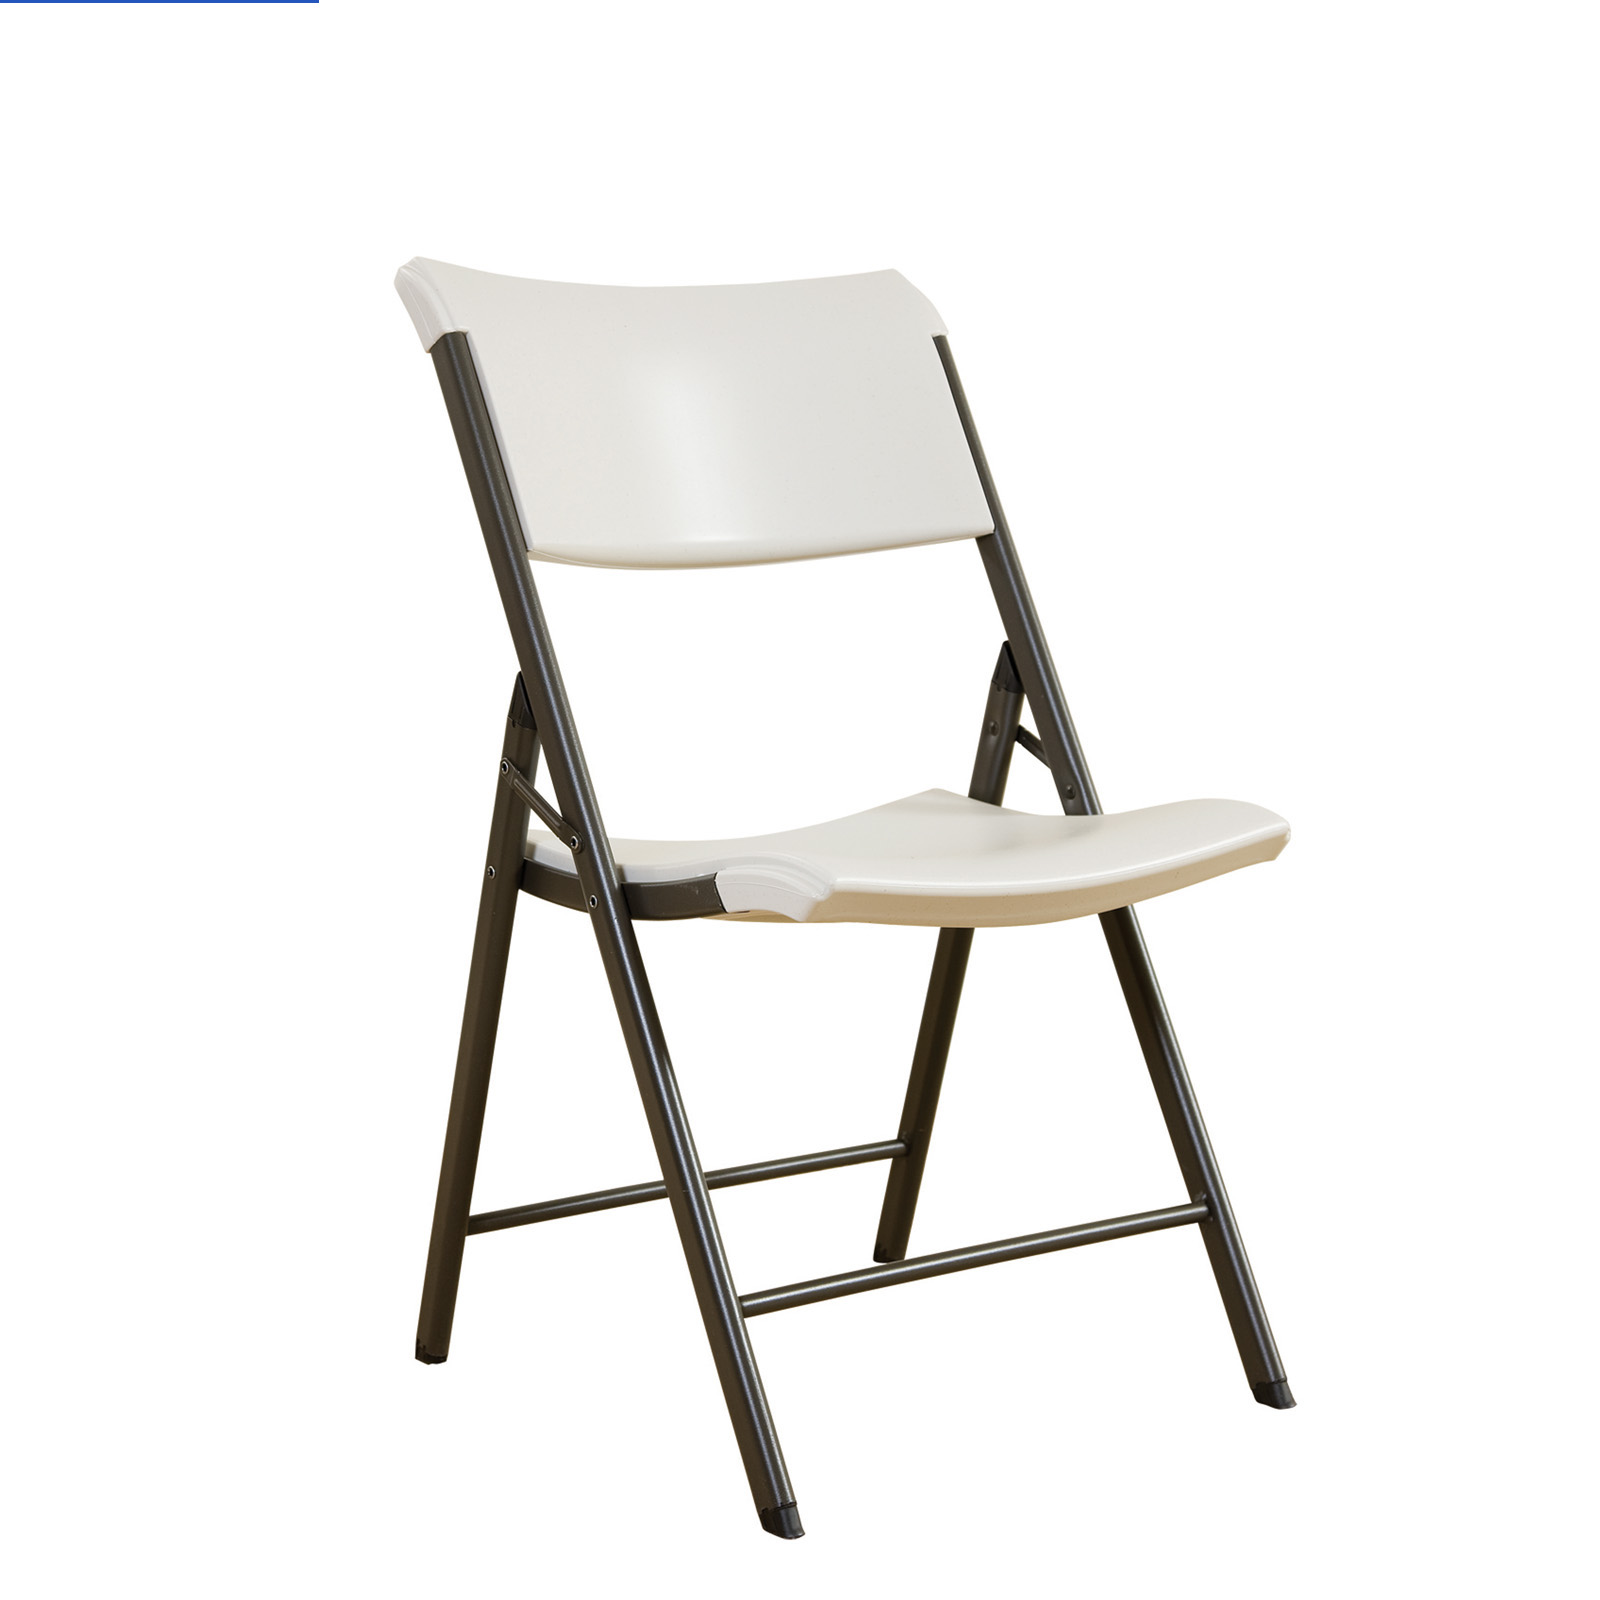 lifetime plastic chairs philippines chair cover rentals windsor 80262 almond 64 pack